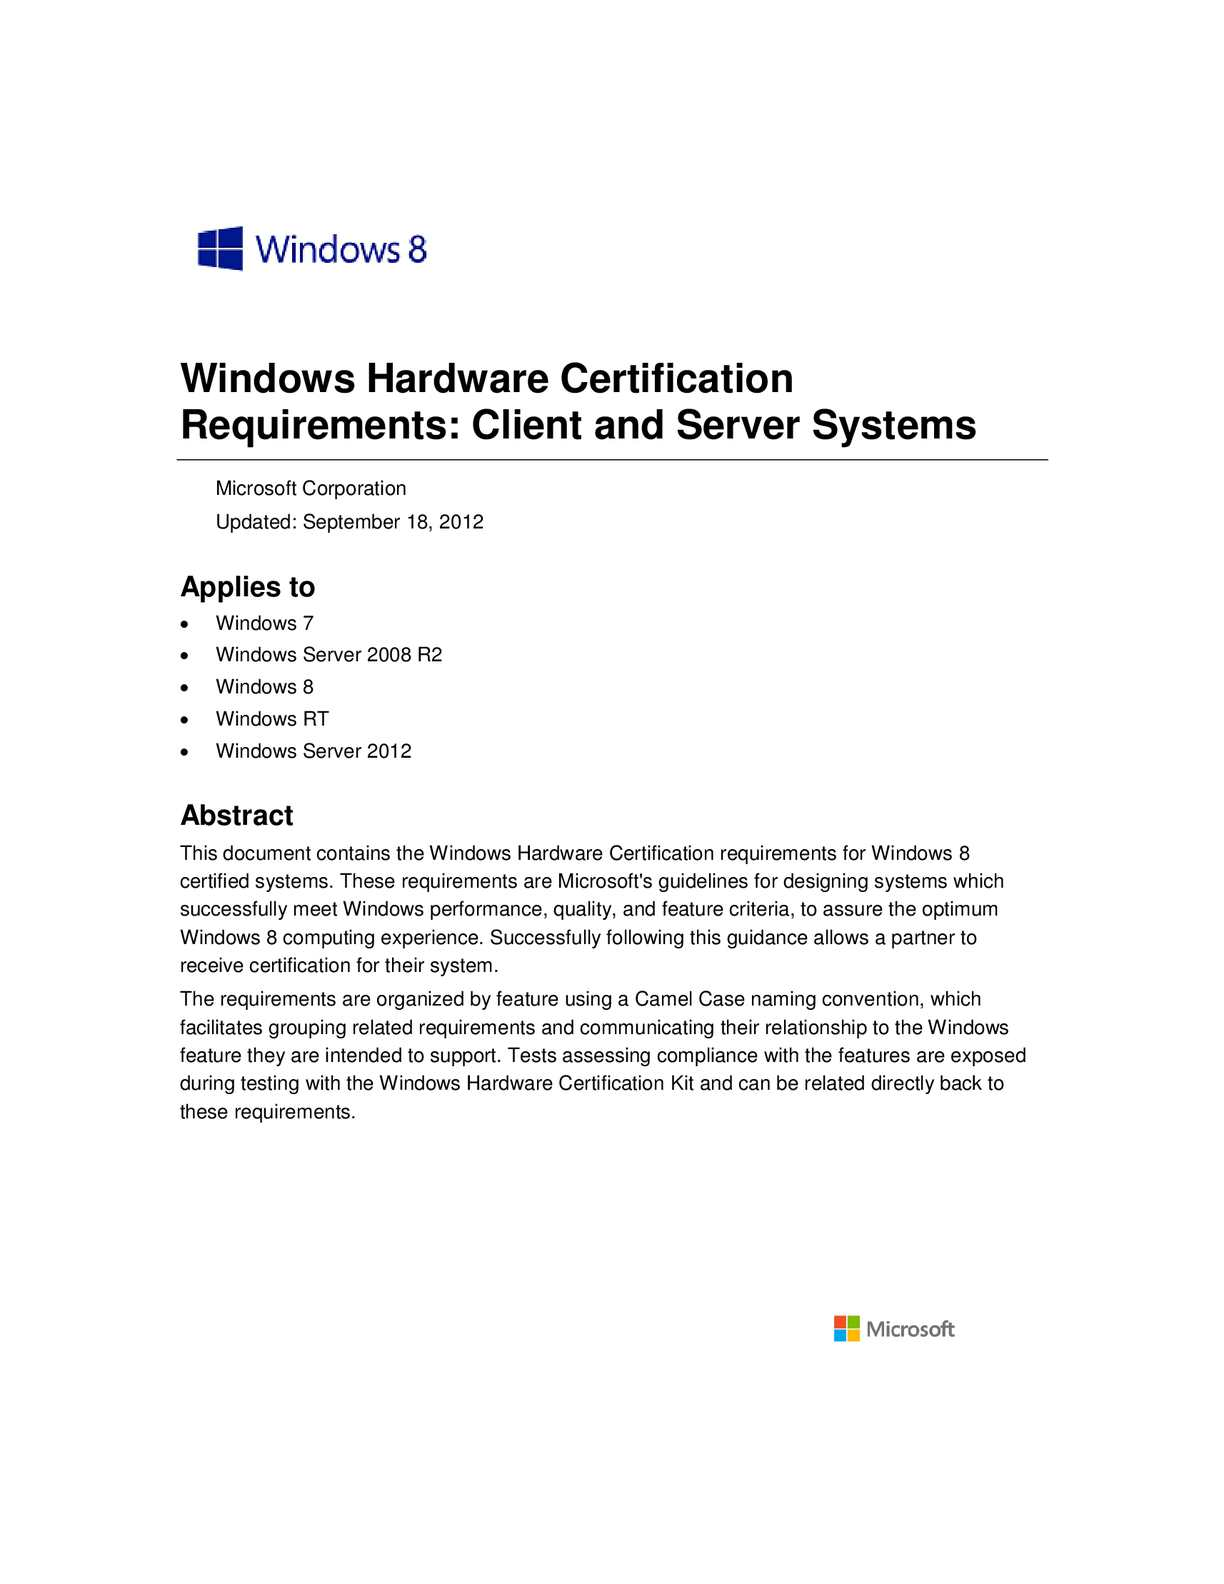 Calaméo - windows8-hardware-cert-requirements-system